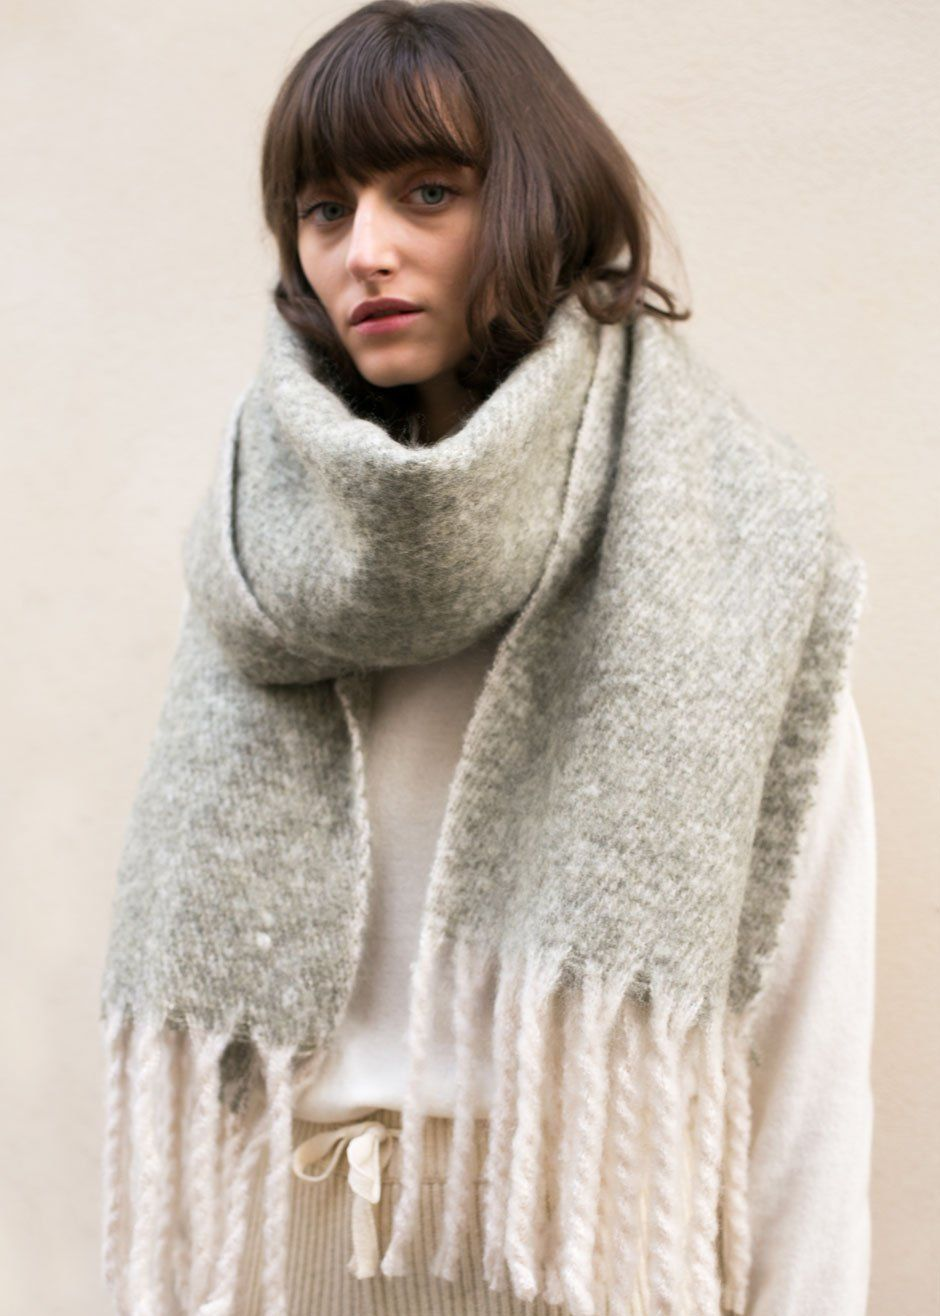 to wear - How to long wear scarf with fringe video